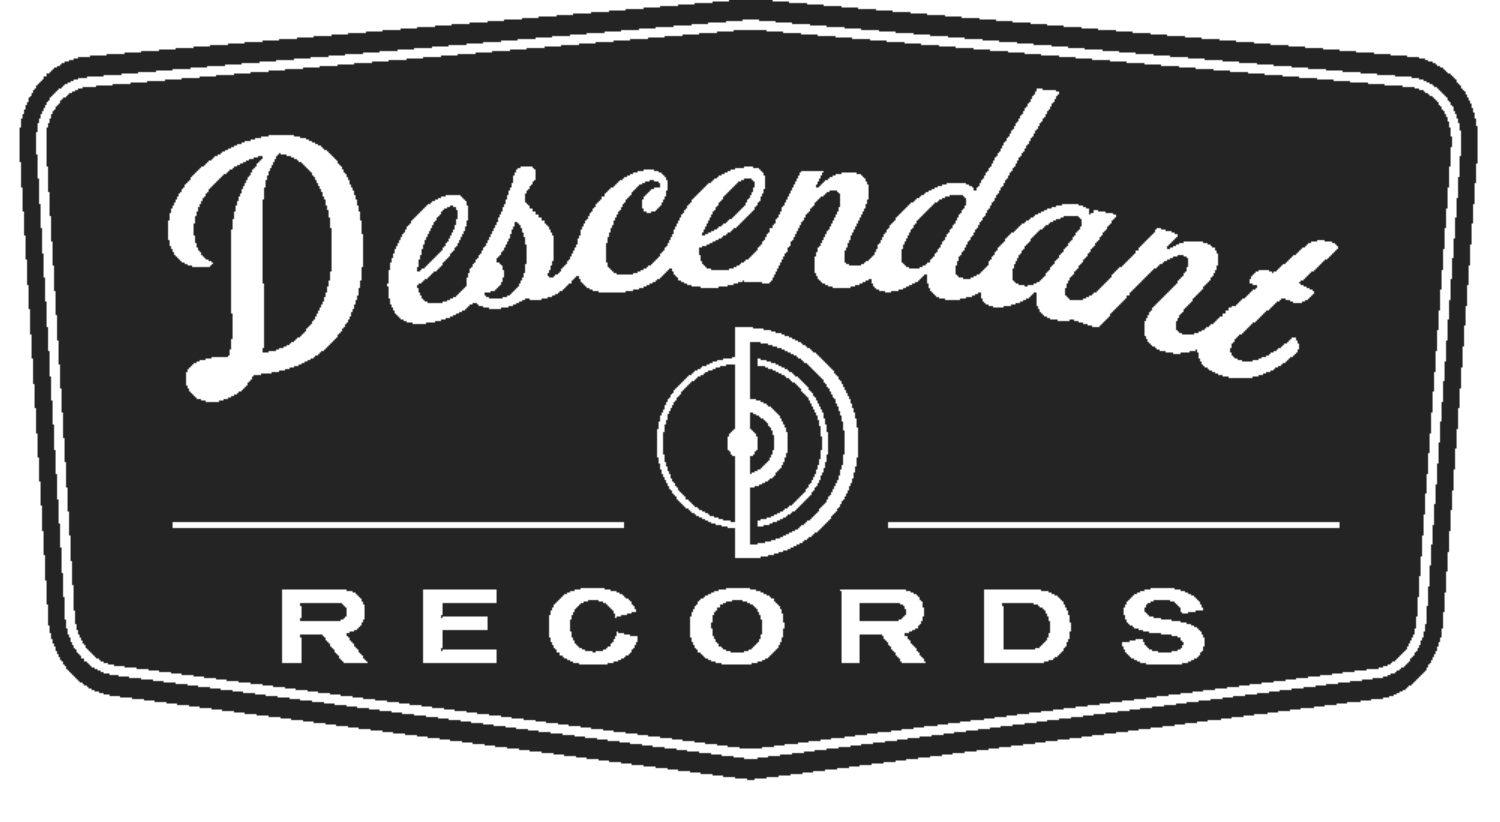 Descendant Records